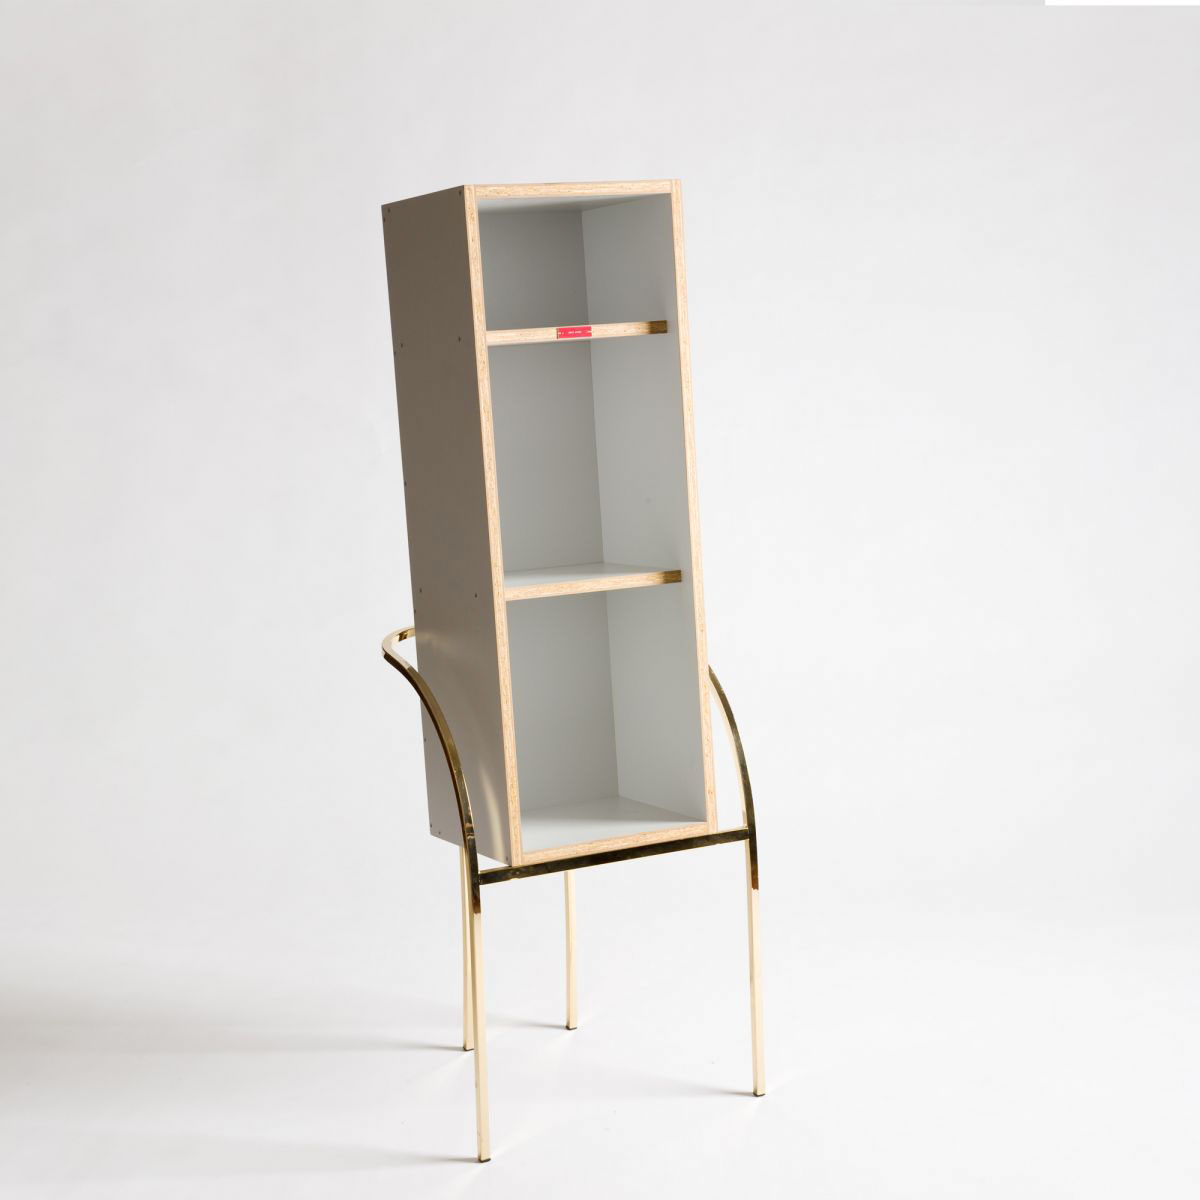 'Somerset House/ Chair S helf' cabinet Martino Gamper pic-1